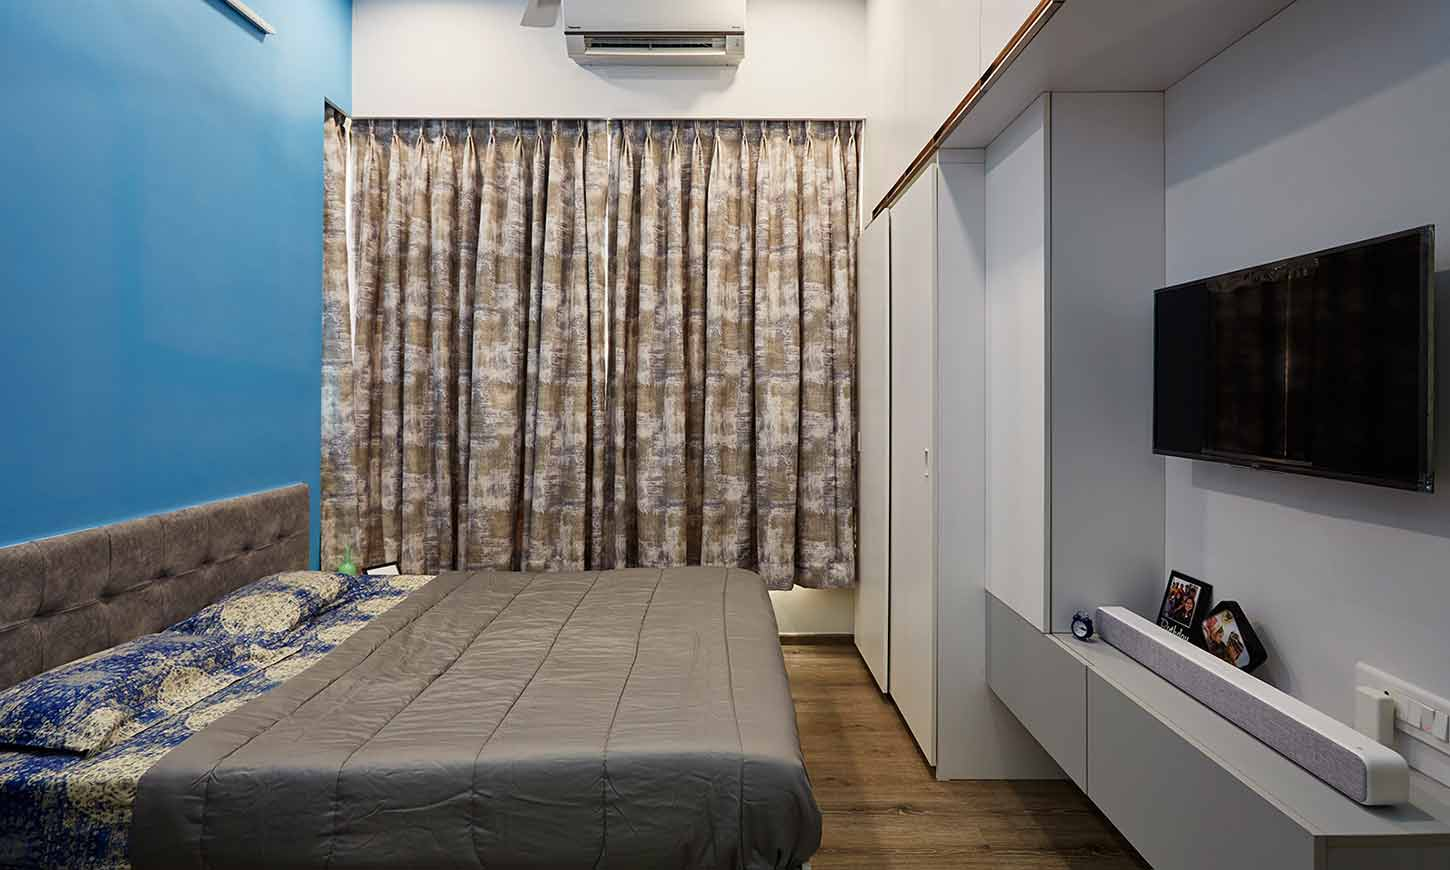 Bedroom designer in mumbai with wall mounted bedroom cupboards and a tv unit